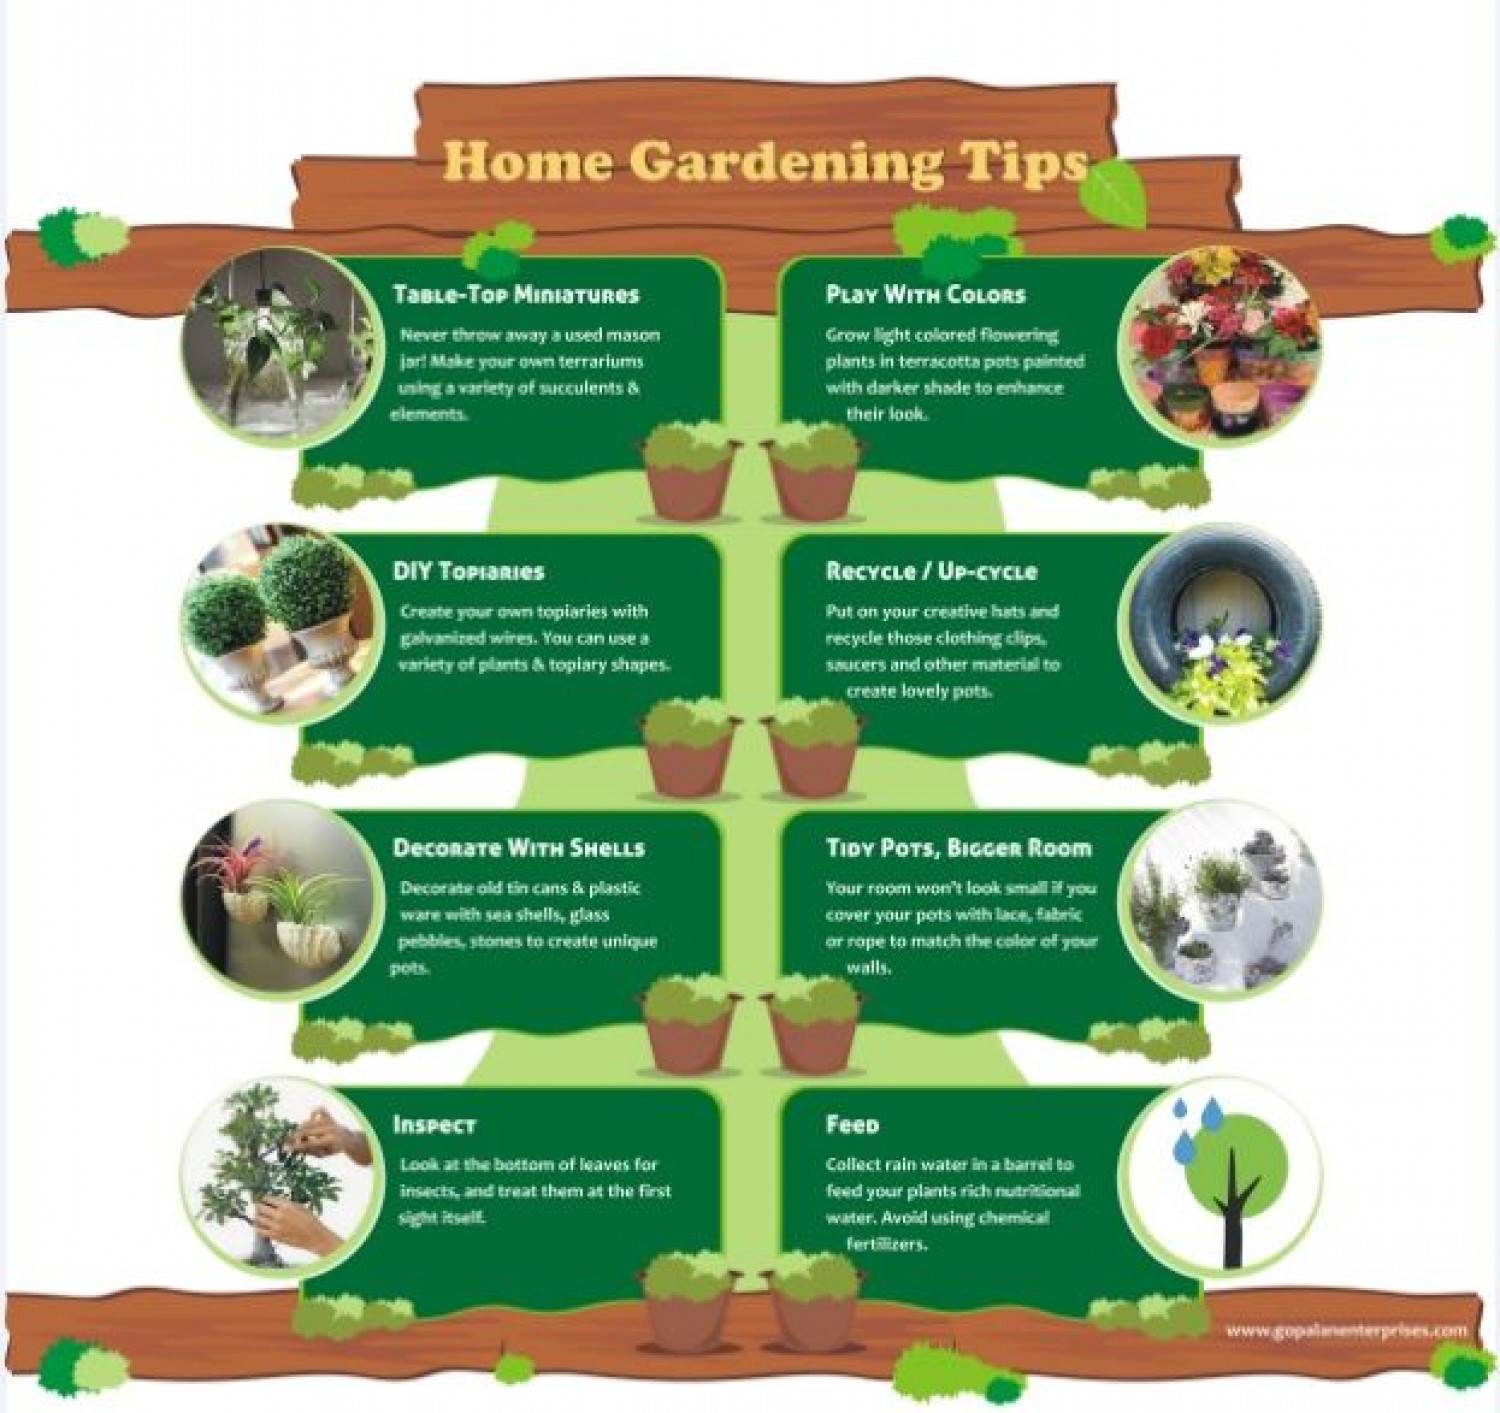 Superieur Properties In Bangalore   Home Gardening Tips Infographic